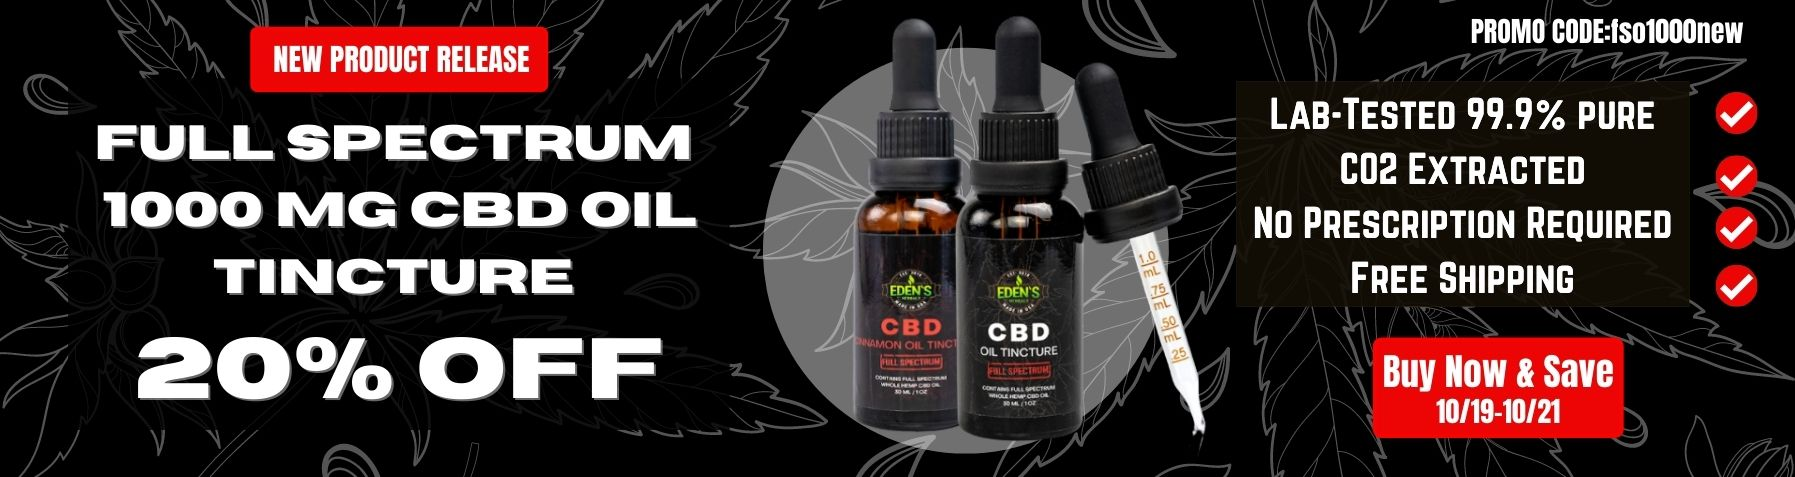 Banner announcing 20% off brand new product full spectrum cbd oil 1000mg from Eden's Herbals